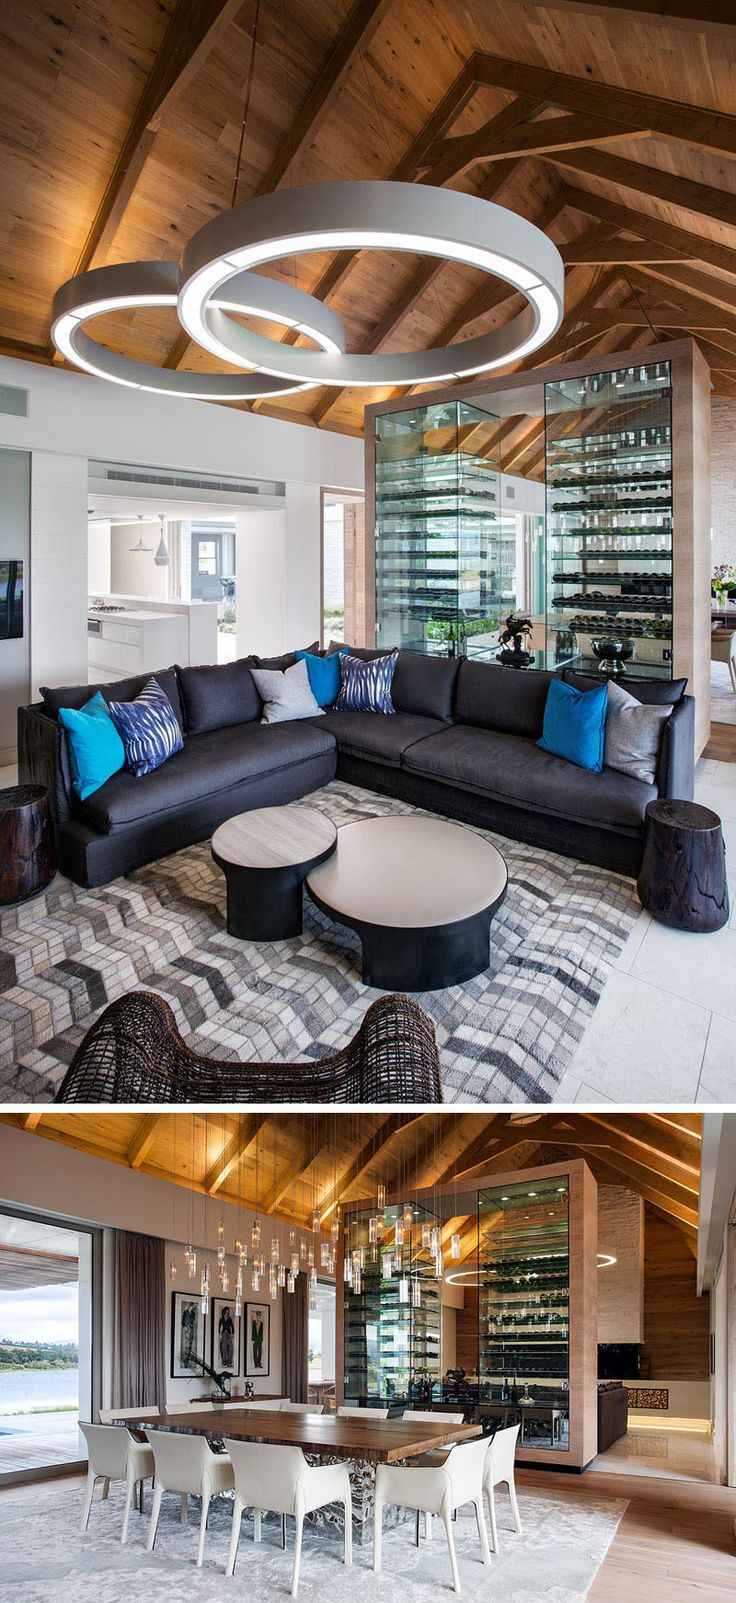 Room Divider Ideas - 10 Examples Of Multi-Functional Room Dividers // Dividing the living room from the dining room in this South African home, is a large wine rack that keeps the wine at just the right temperature.